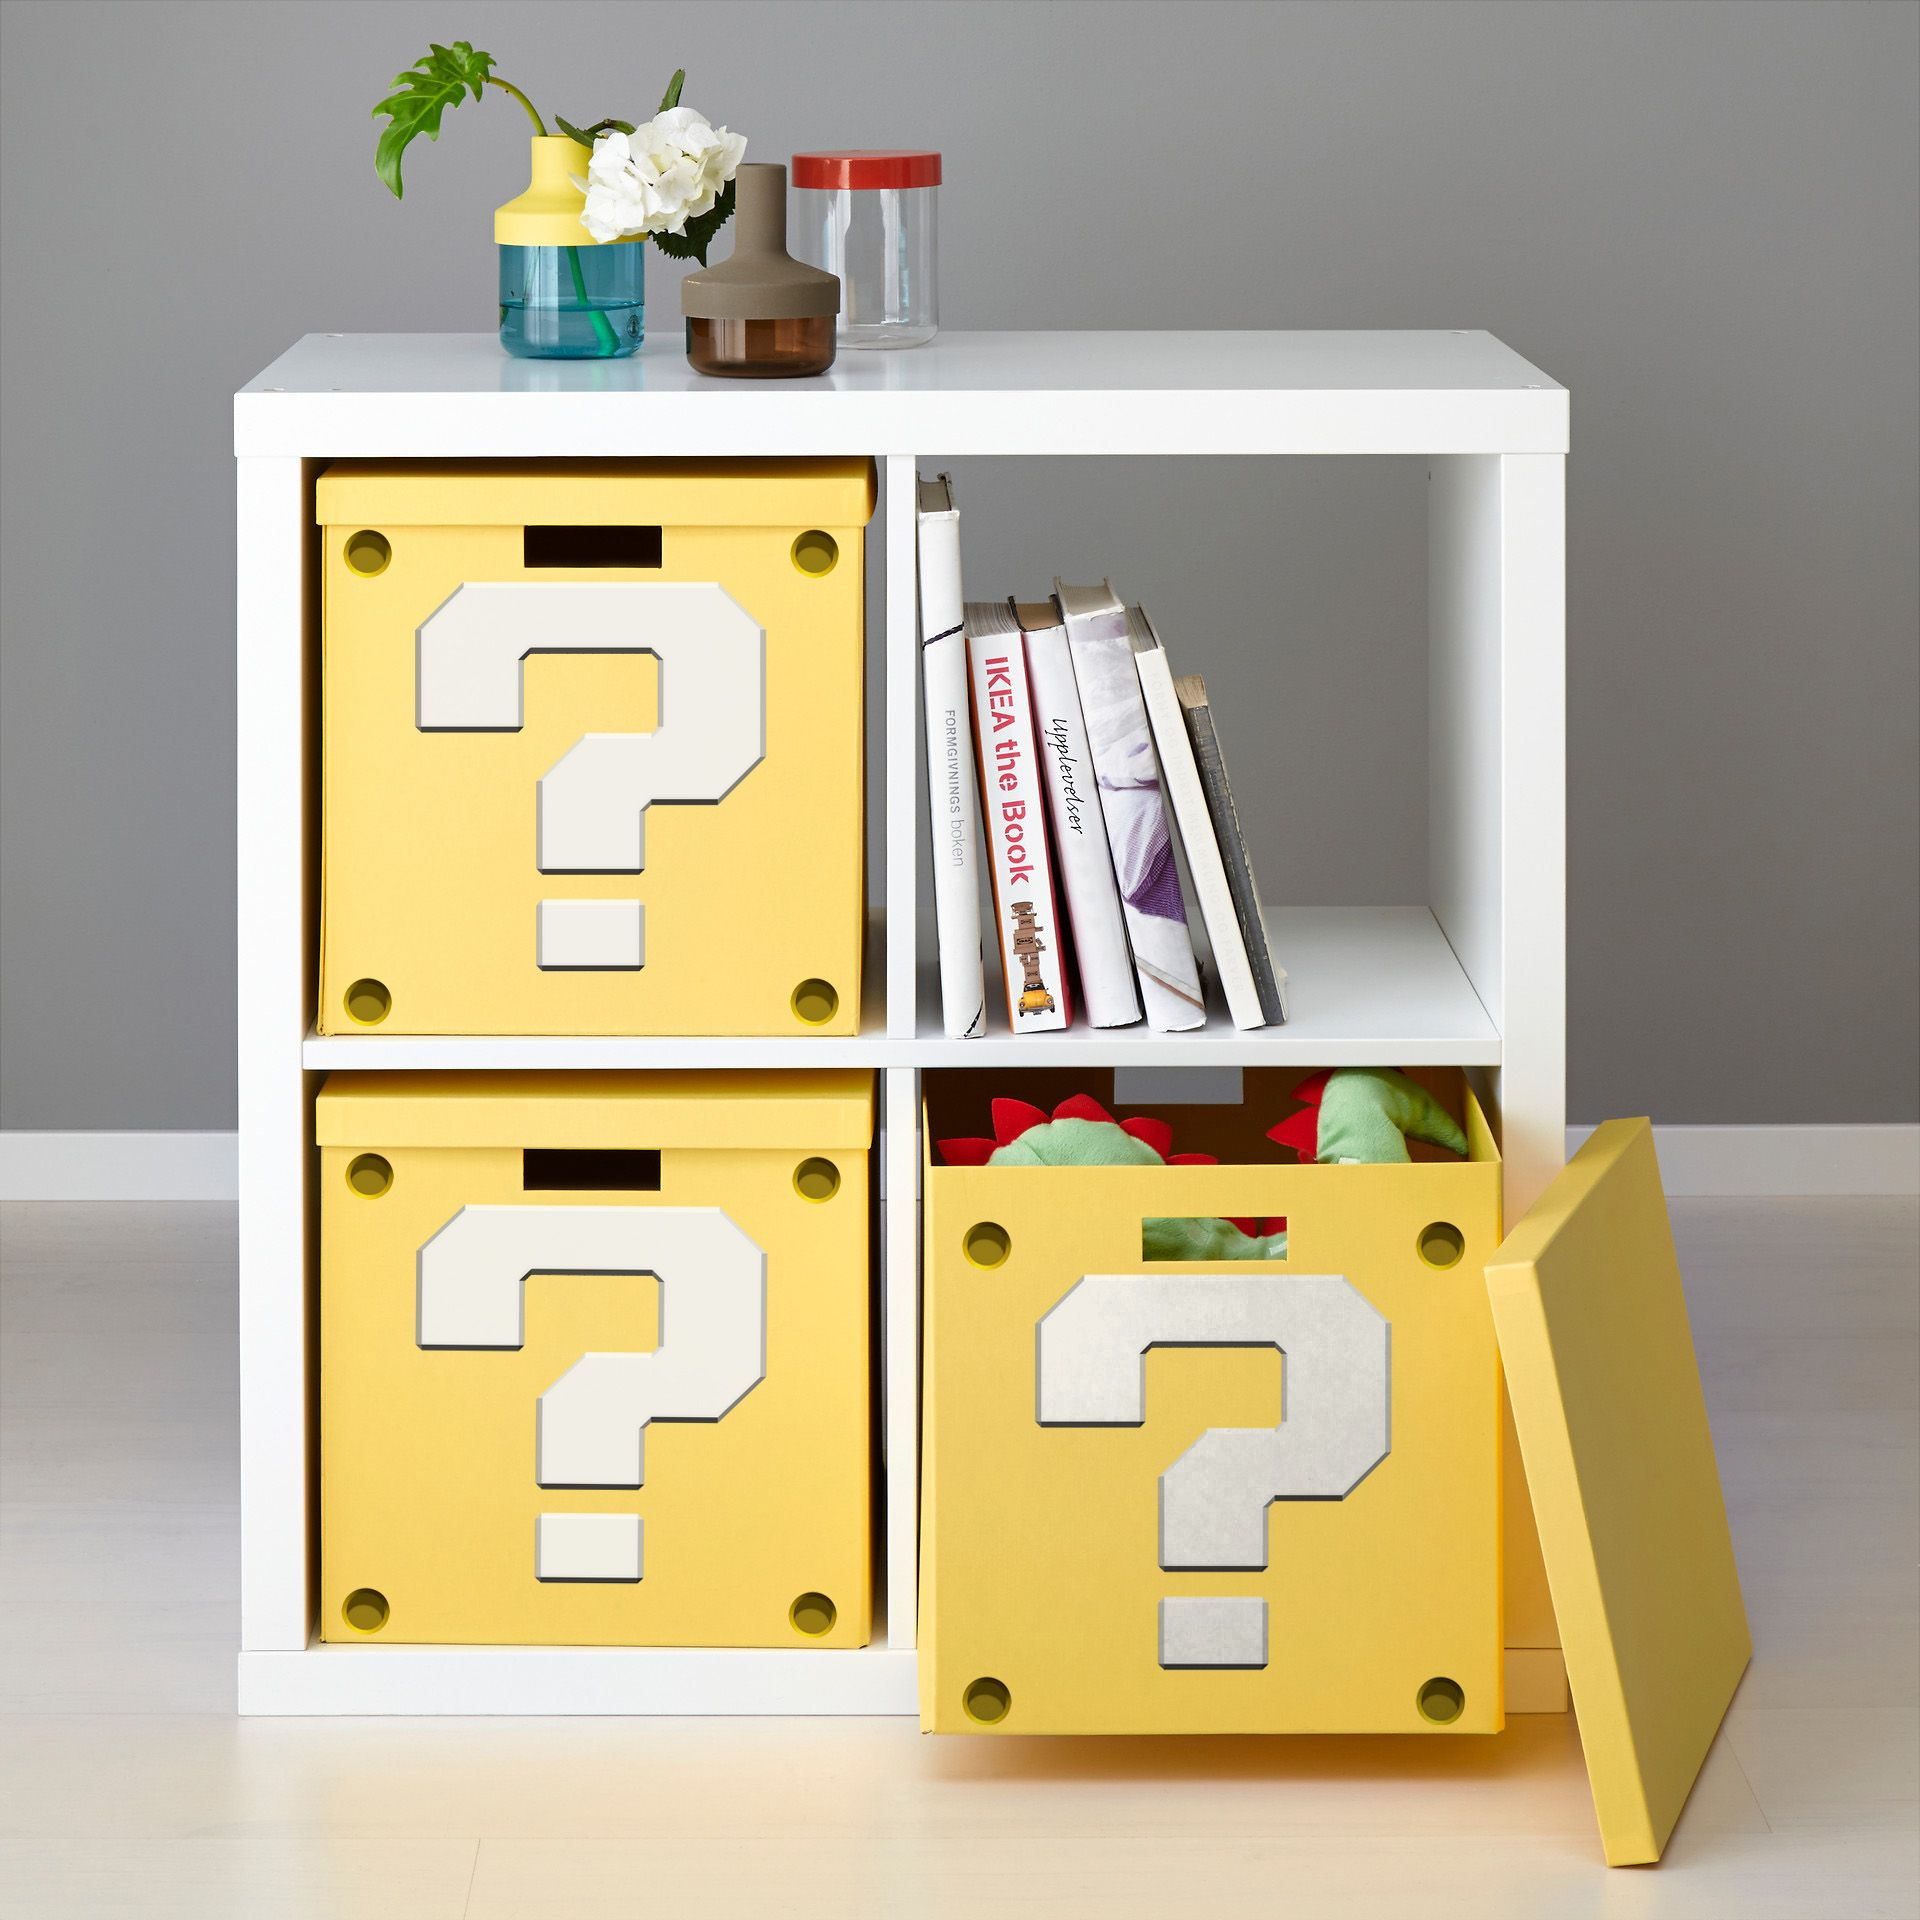 Muebles Jugueteros Ikea - How To Make A Super Mario Question Block Shelf From Ikea Furniture [mjhdah]https://i.pinimg.com/originals/f8/31/09/f8310917edfa5709a1926961a138c690.jpg